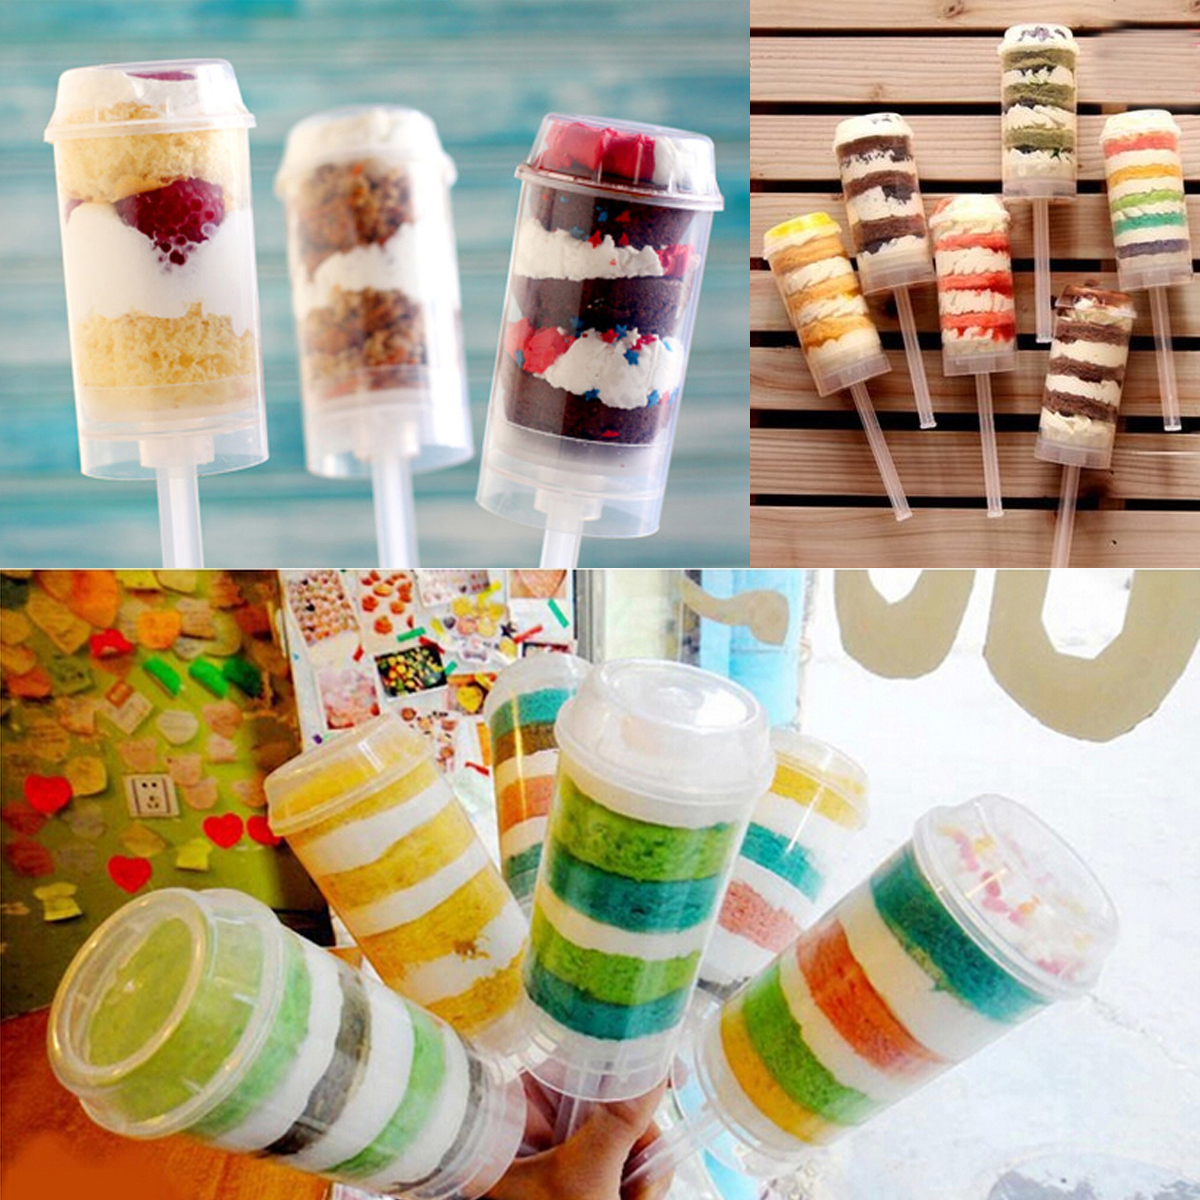 10Pcs Clear Push Up Pop Cake Containers Candy Lids Shooters For Birthday Party